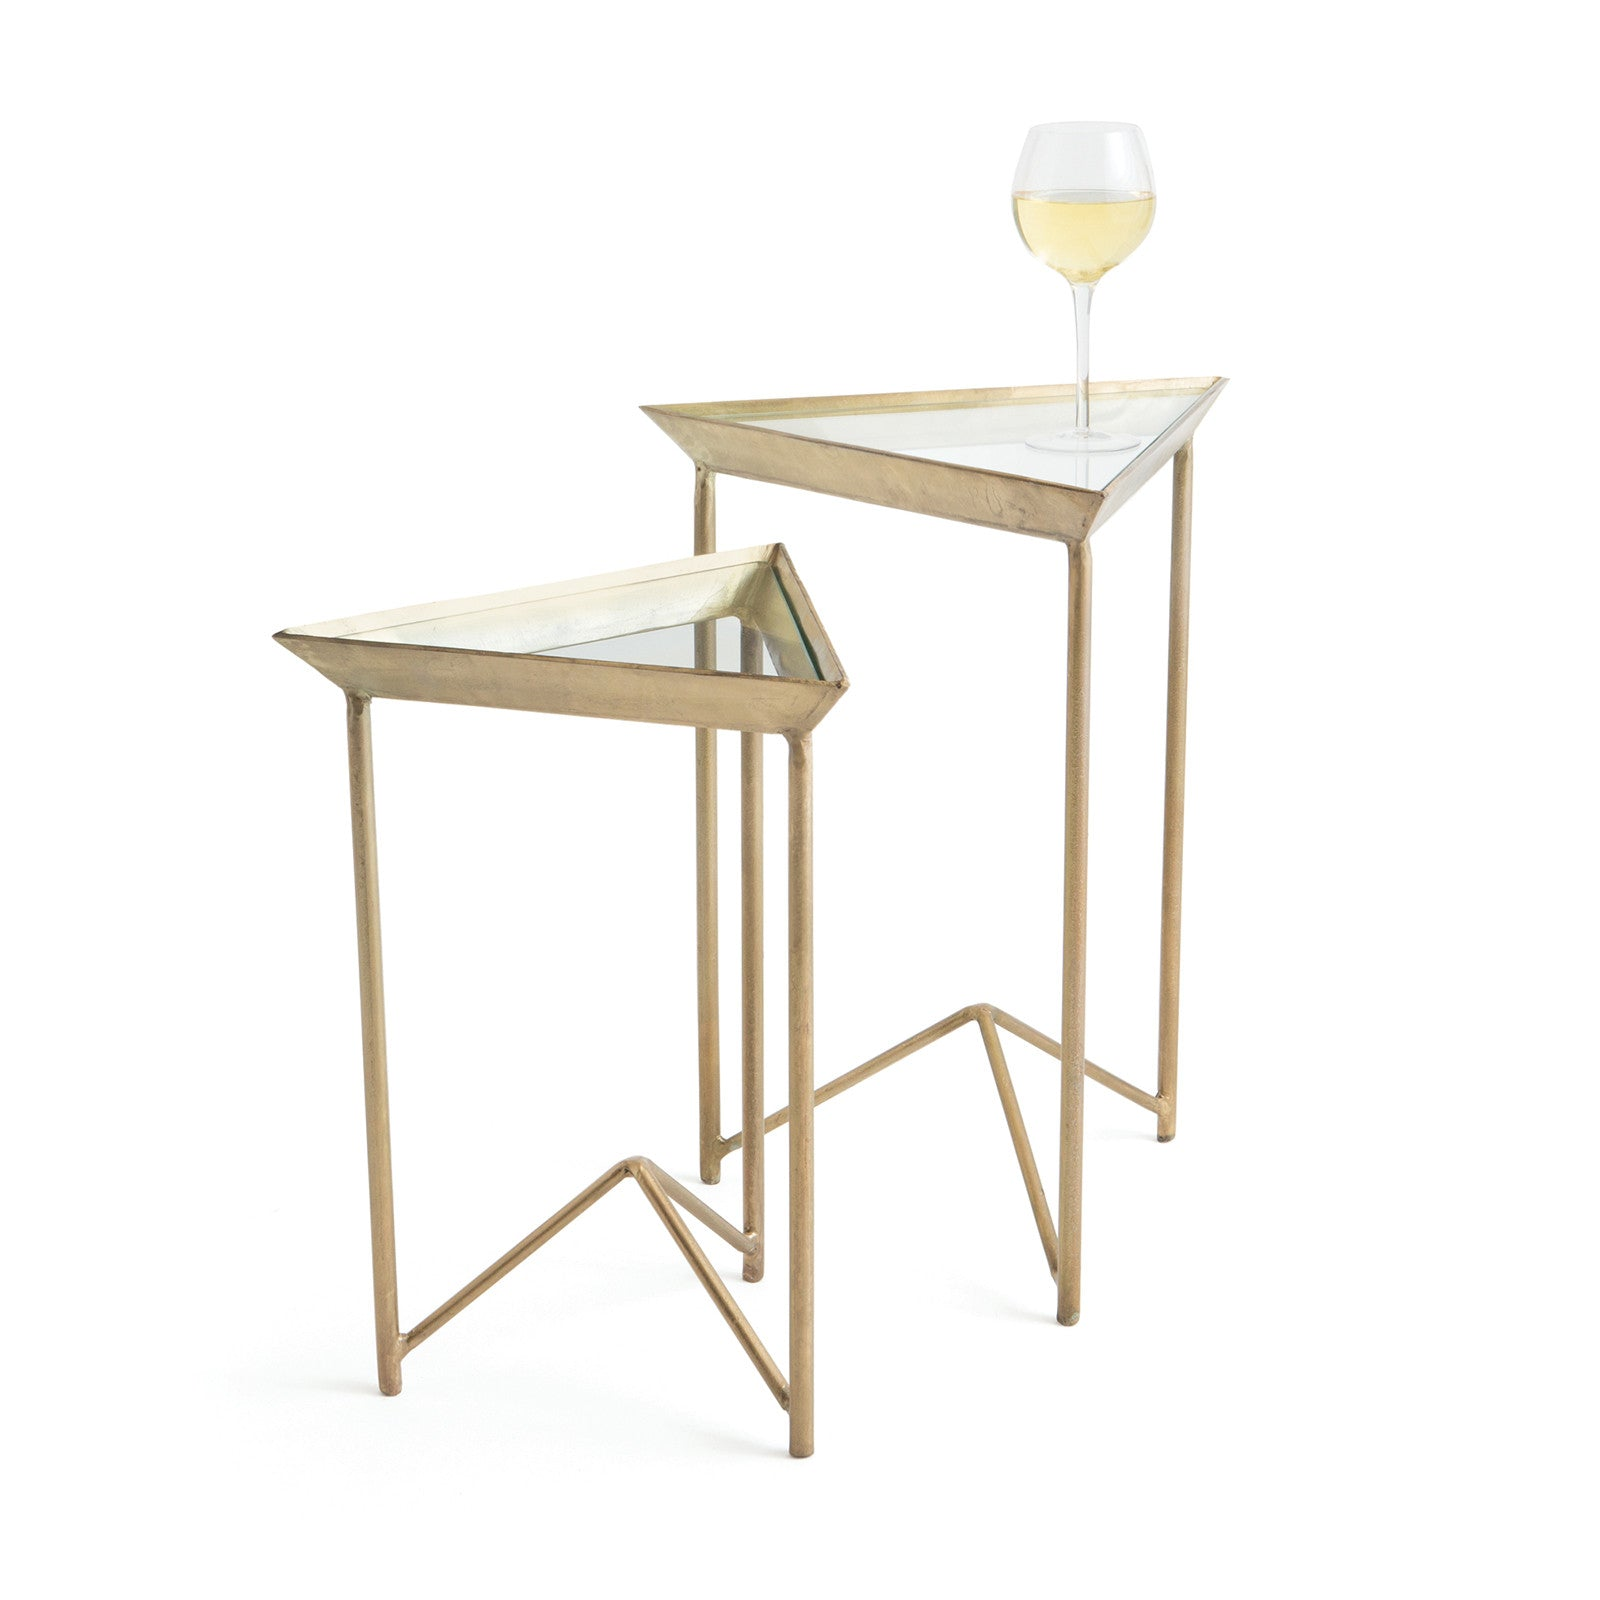 Ludlow Nesting Tables - Set of 2